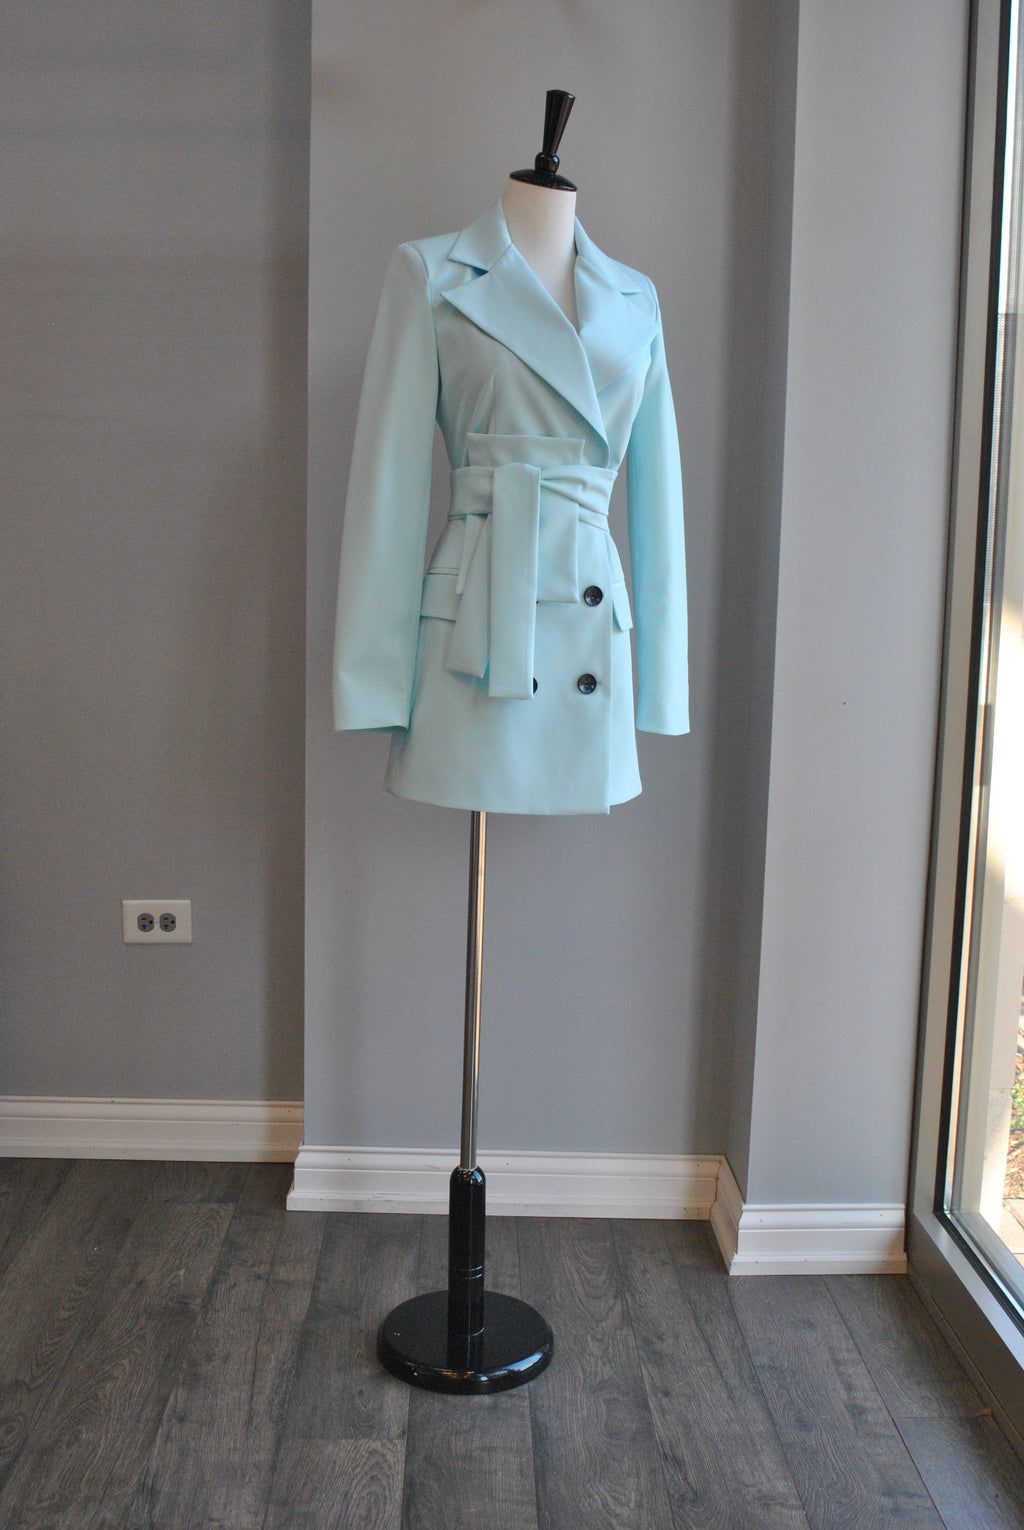 AQUA BLUE DOUBLE BREASTED FIT JACKET WIT A BELT